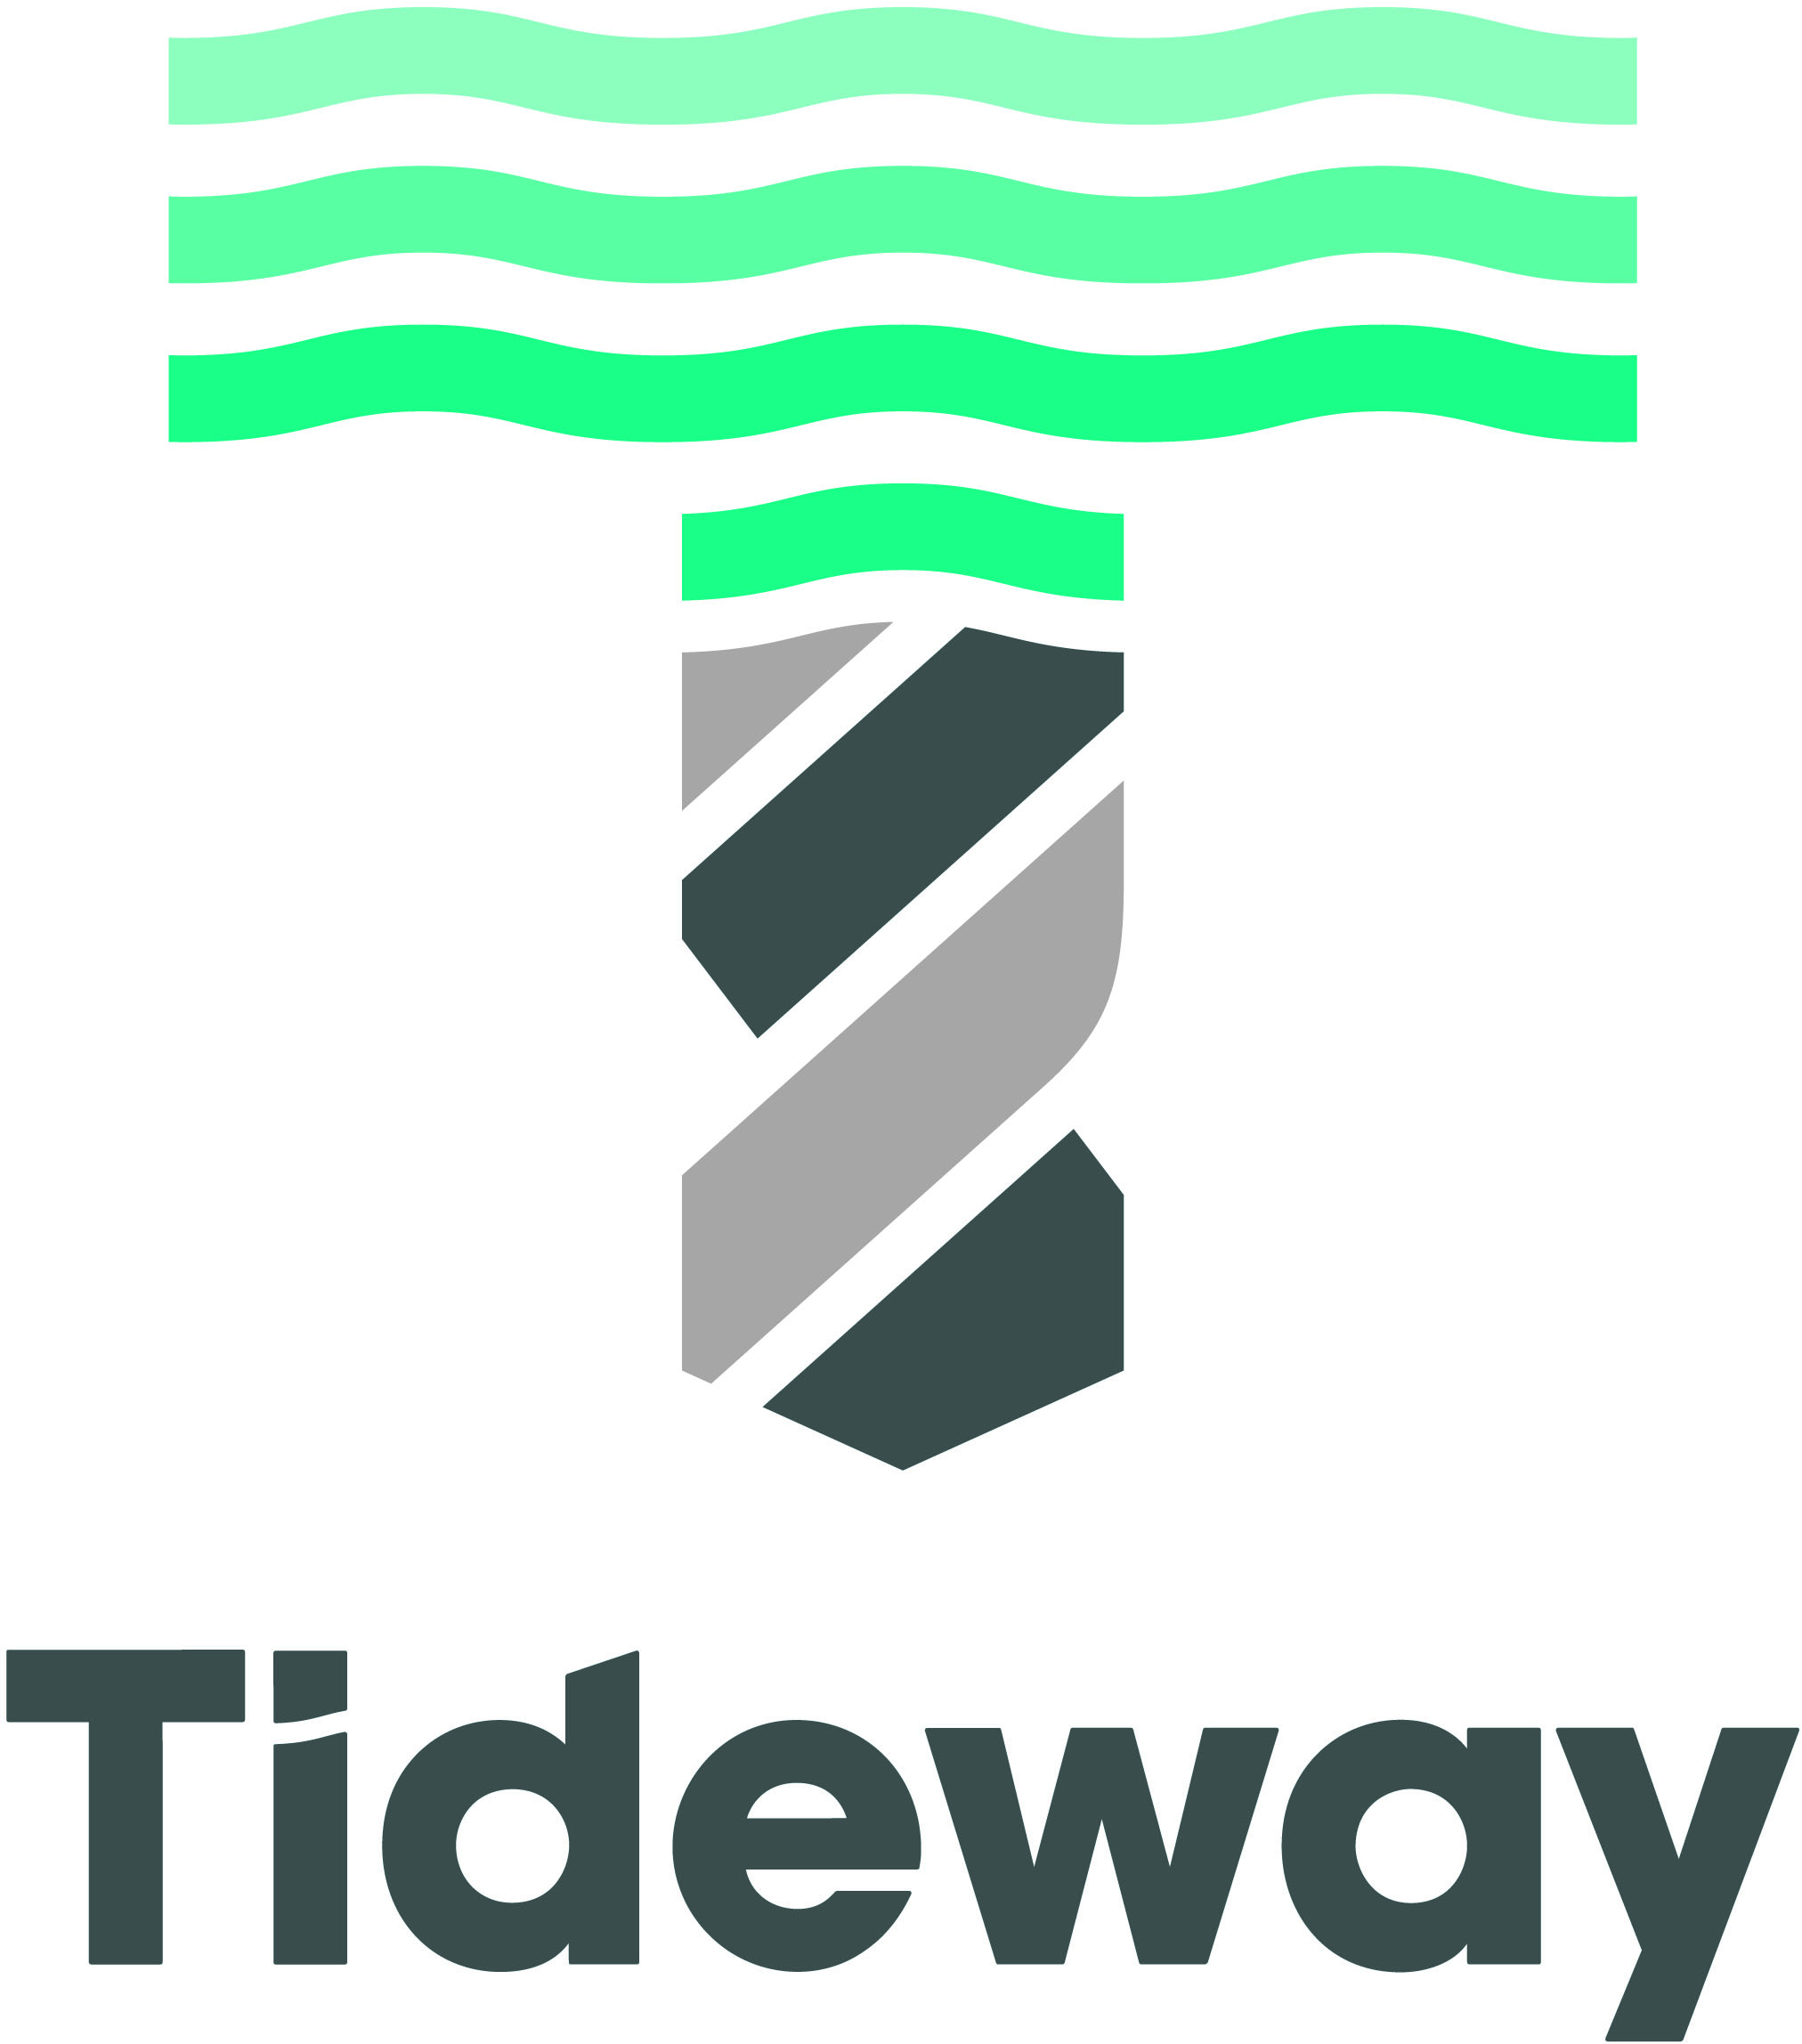 https://www.tideway.london/